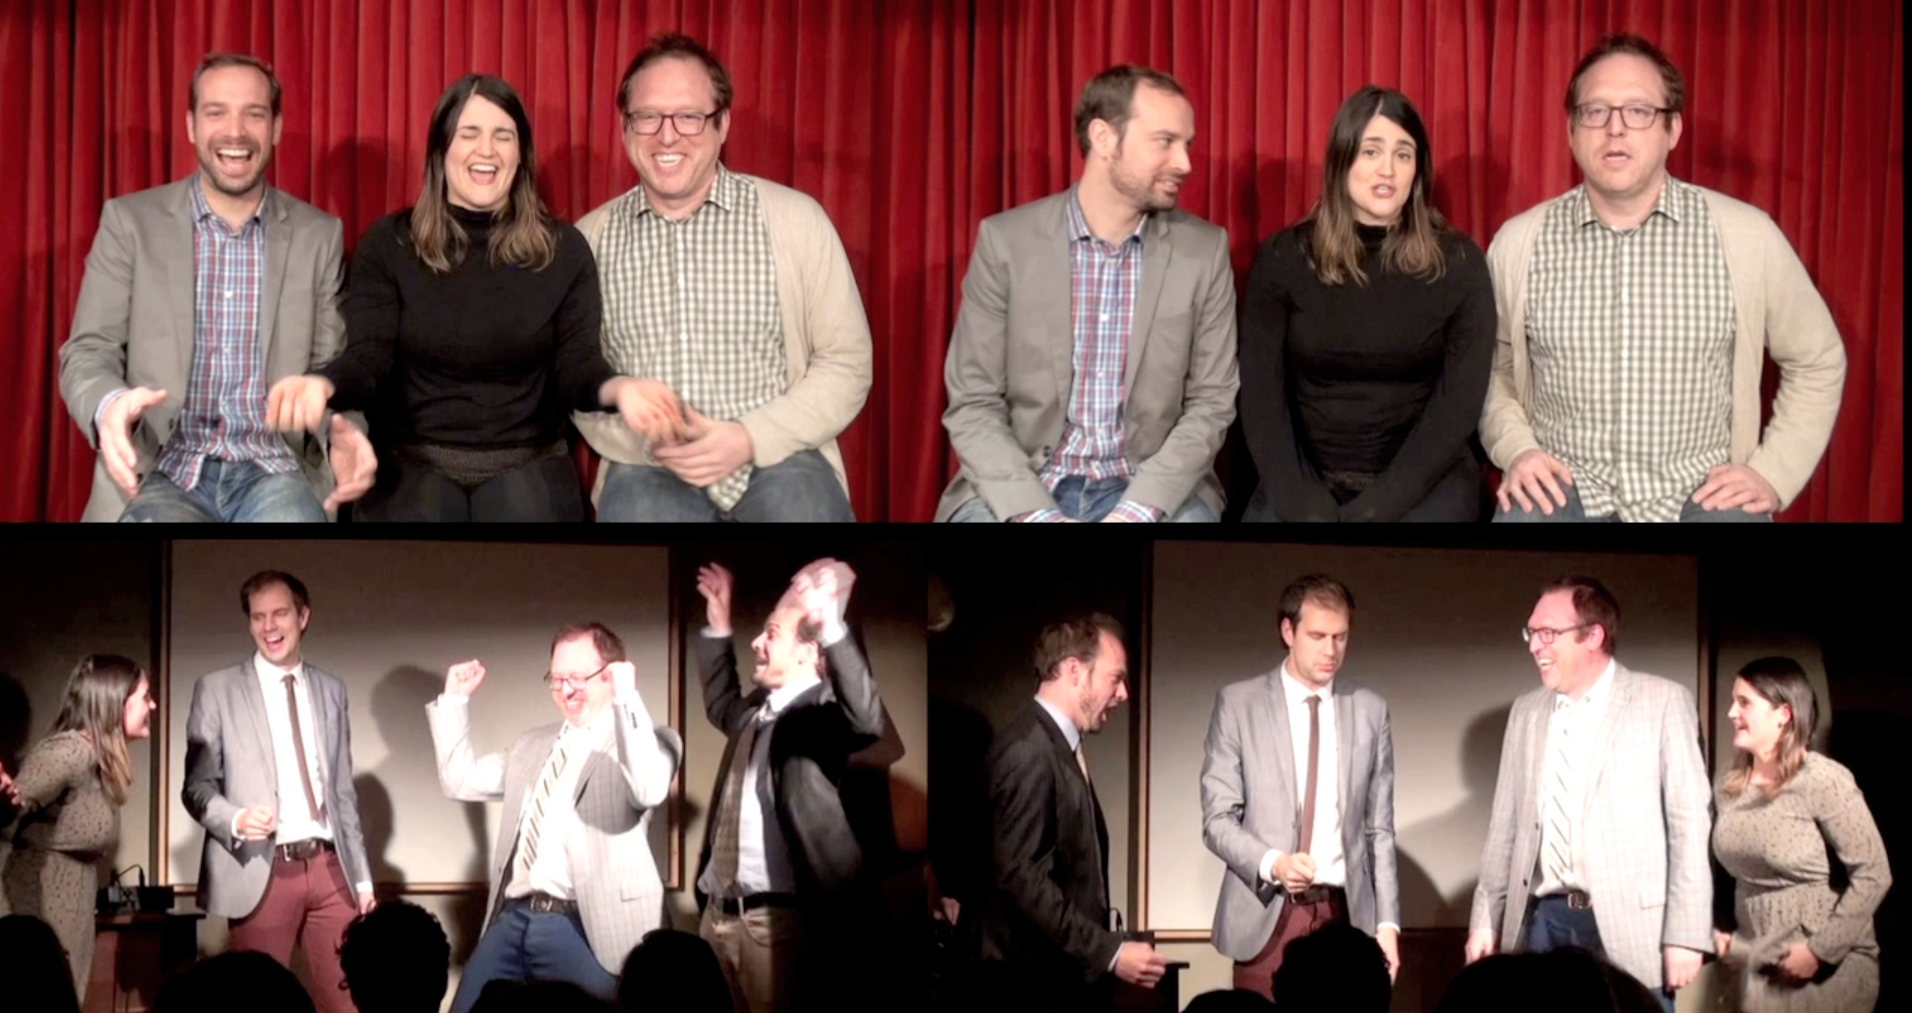 VIDEO – Our Interview with BONSPIEL! Toronto's Most Revered Improv Troupe